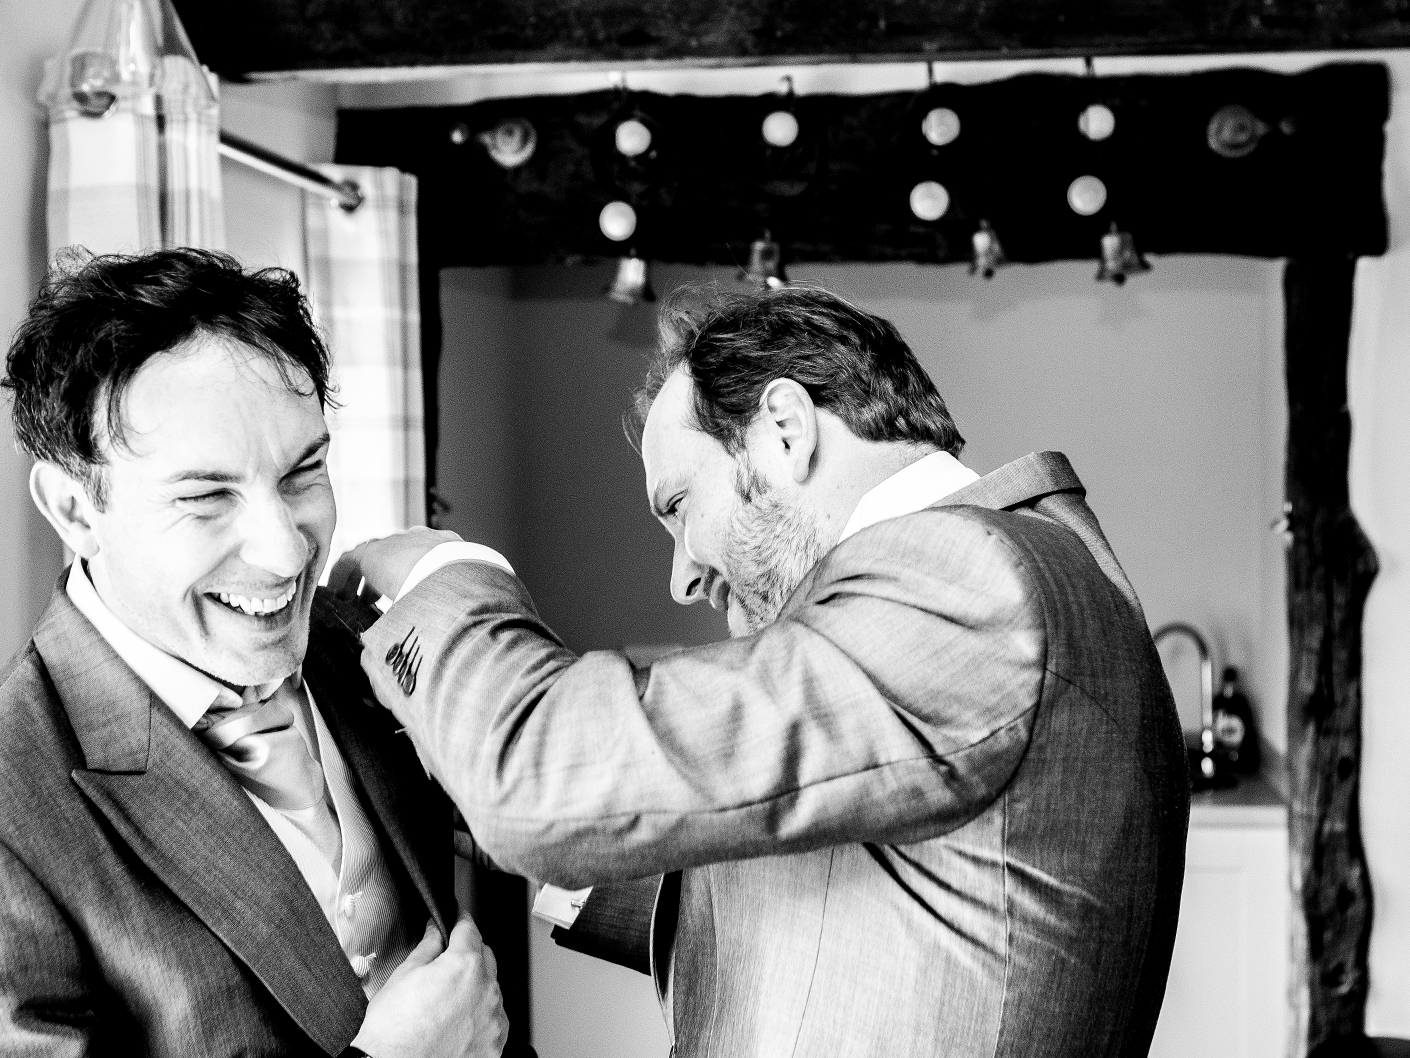 wedding-photography-of-the-groom-and-best-man-at-sandhole-oak-barn-cheshire